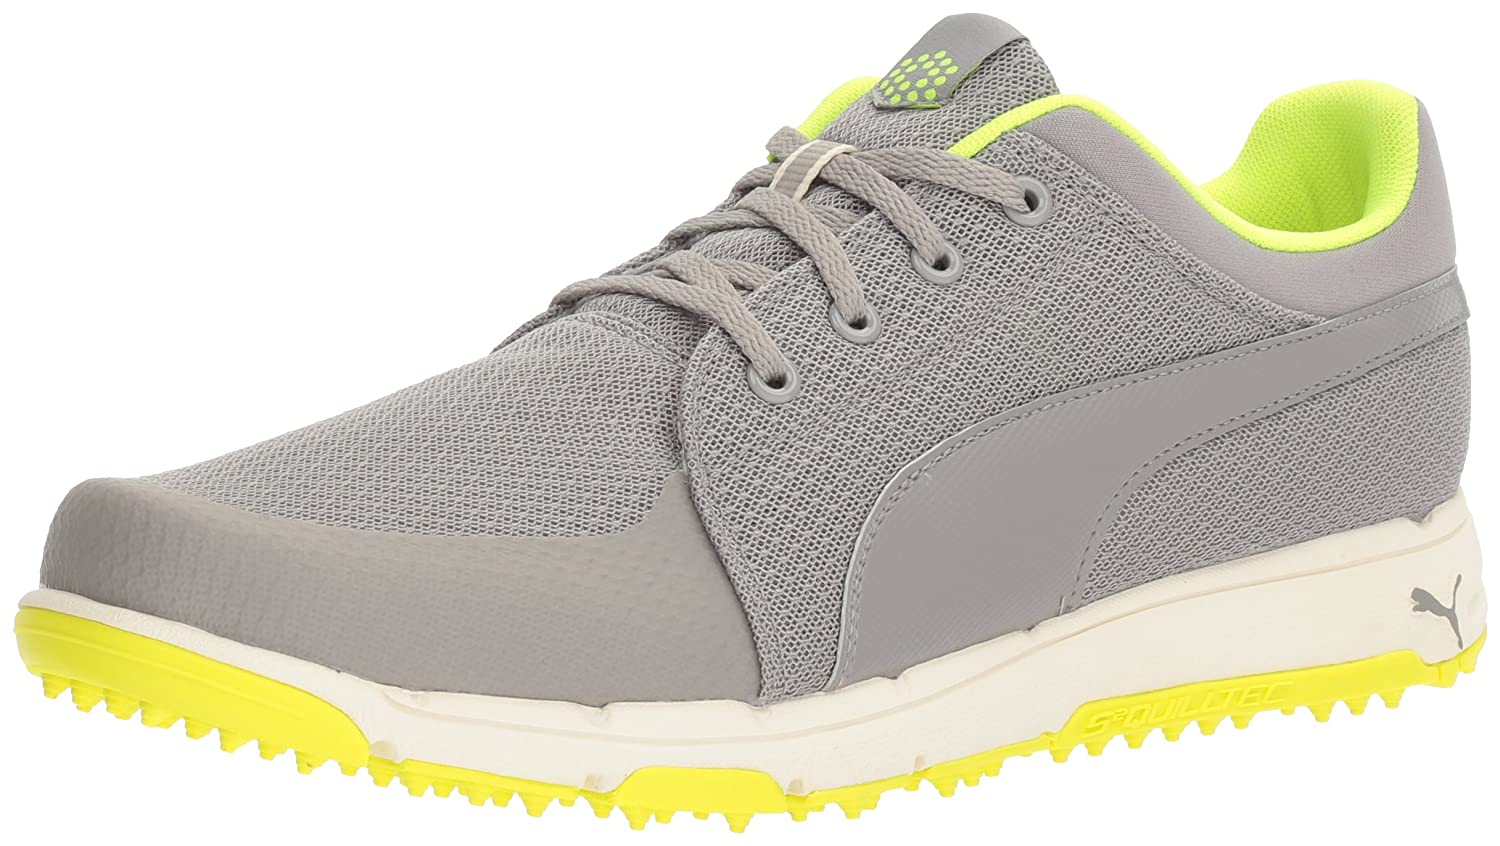 PUMA Men's Grip Sport Golf Shoe B01GIRHRKE 9.5 M US|Drizzle/Safety Yellow